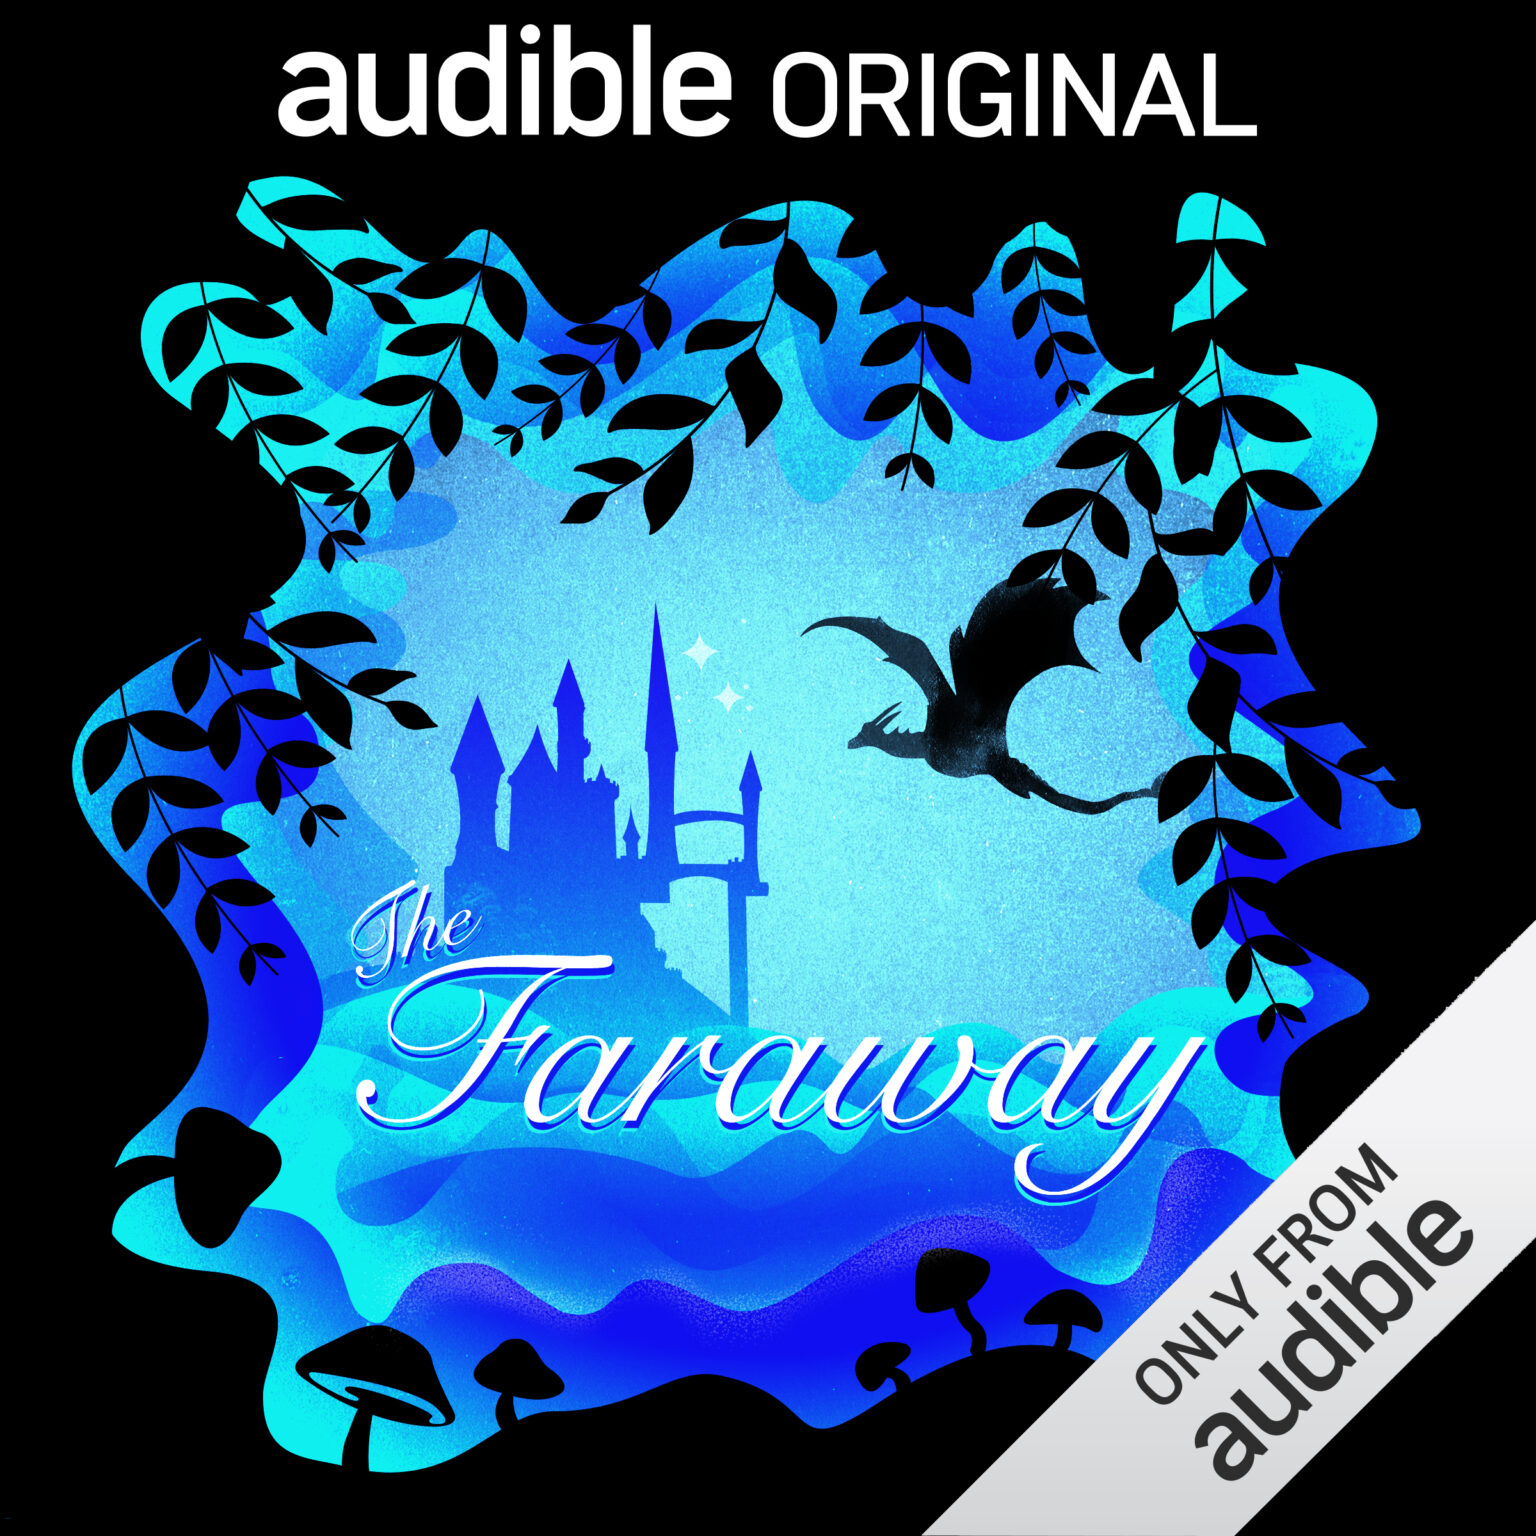 audible_cover